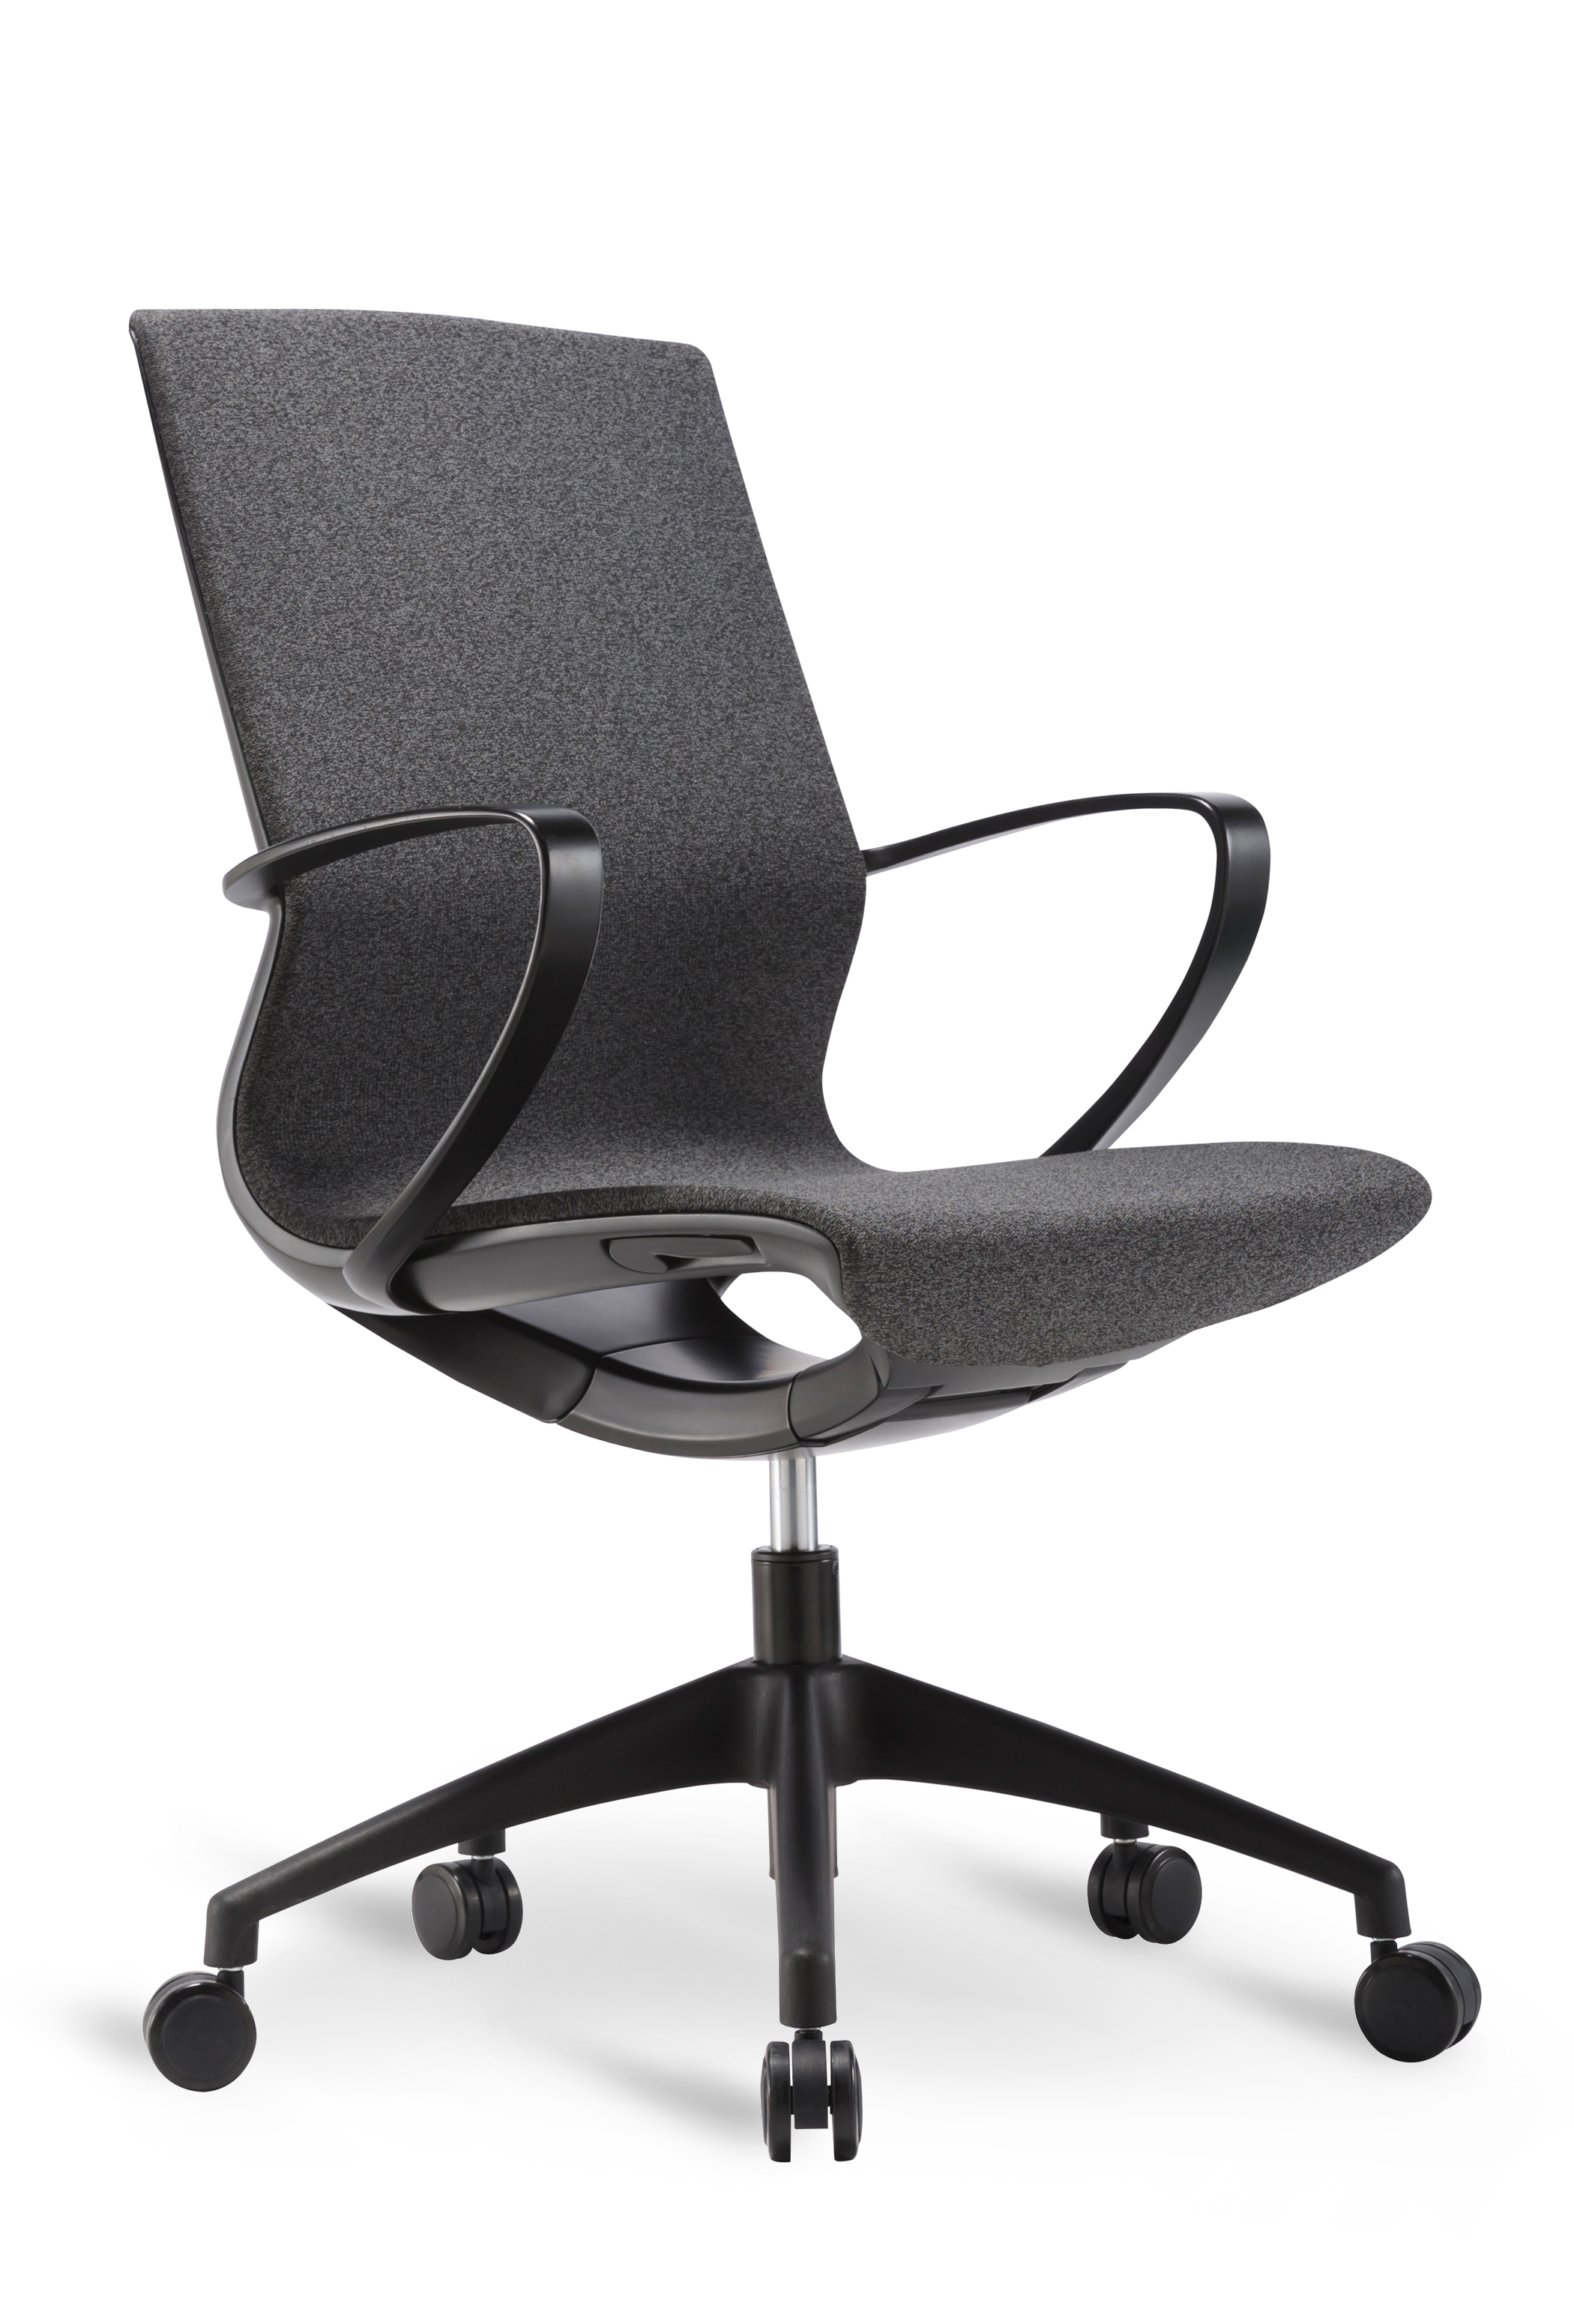 WS - L19 multipurpose chair - Black (Front angle)